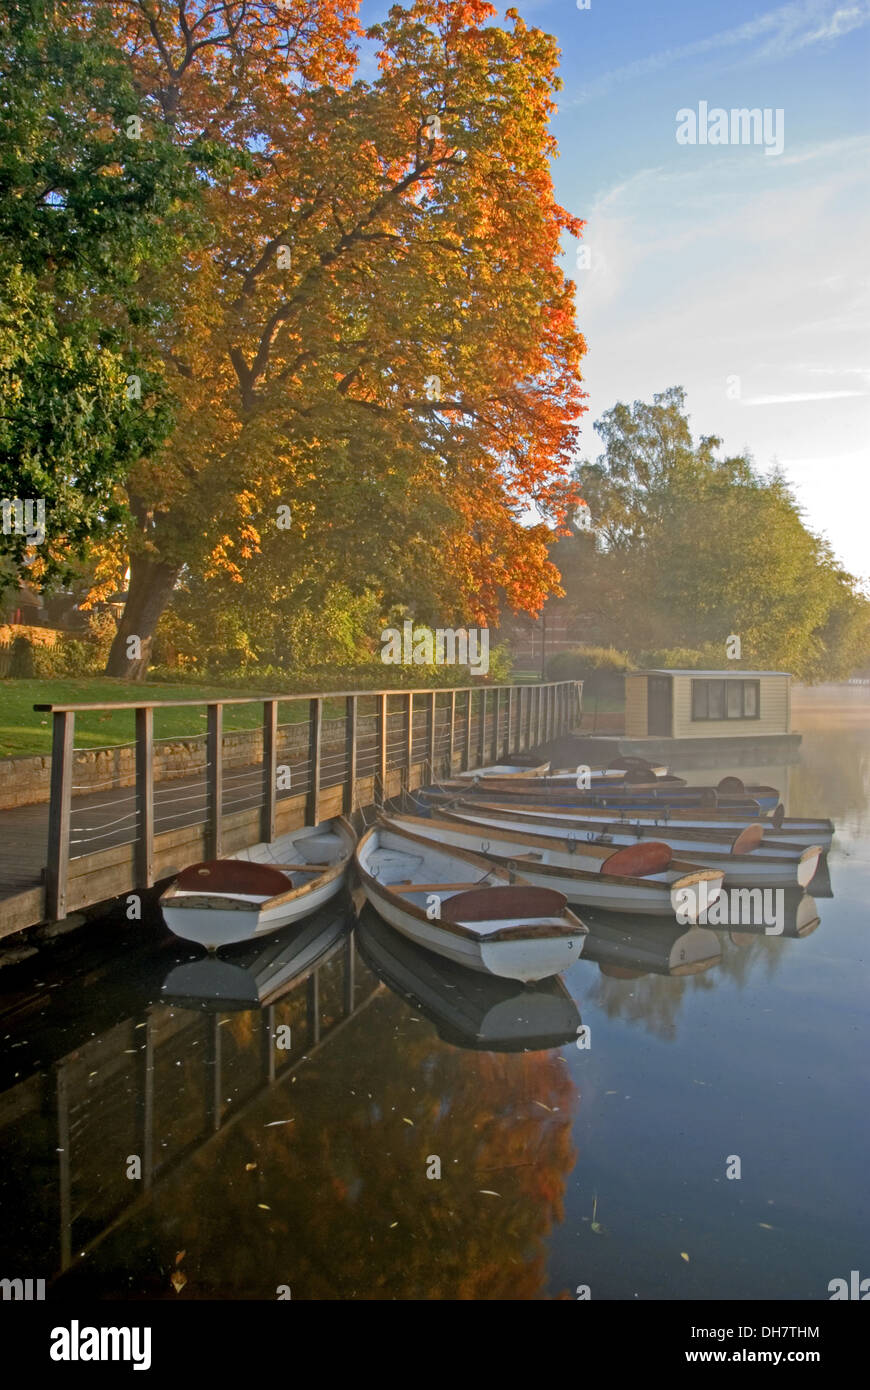 The River Avon in Stratford upon Avon with rising mists and moored rowing boats in an atmospheric autumnal river scene. - Stock Image